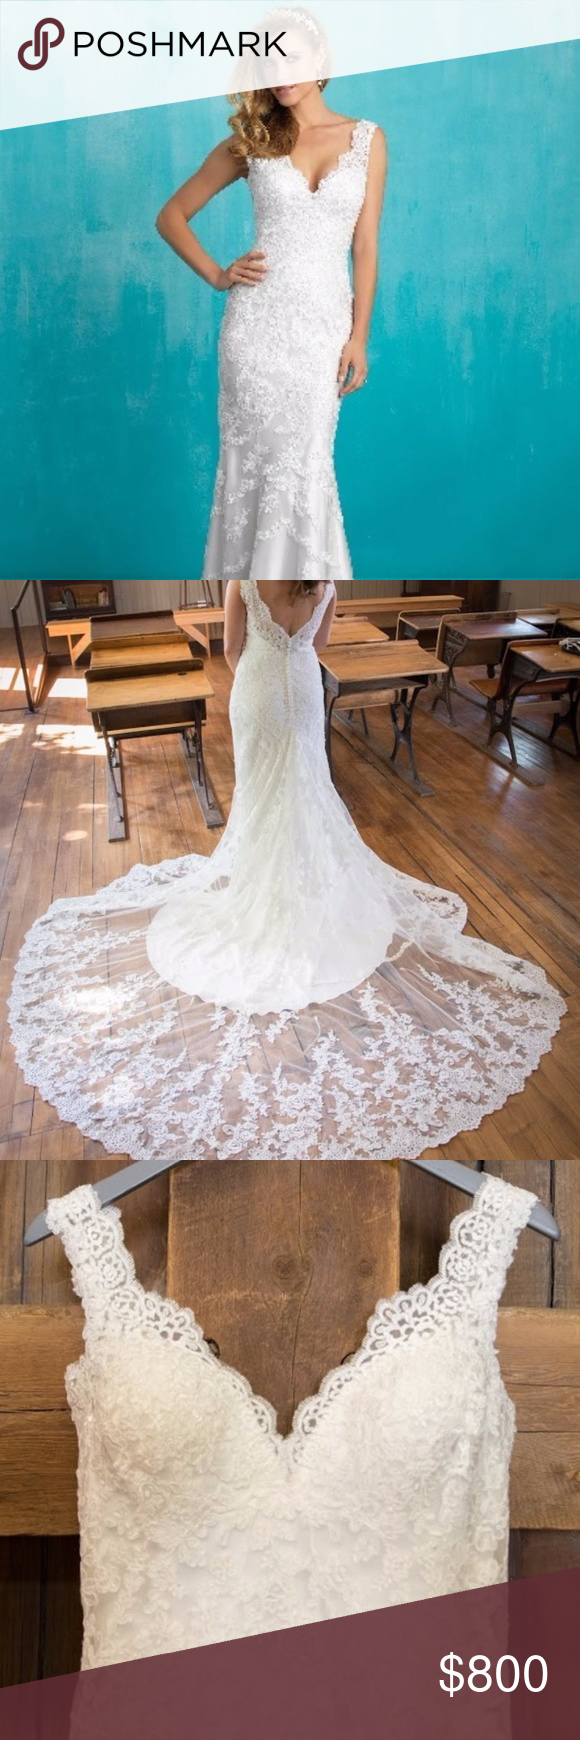 Spotted while shopping on poshmark allure wedding gown